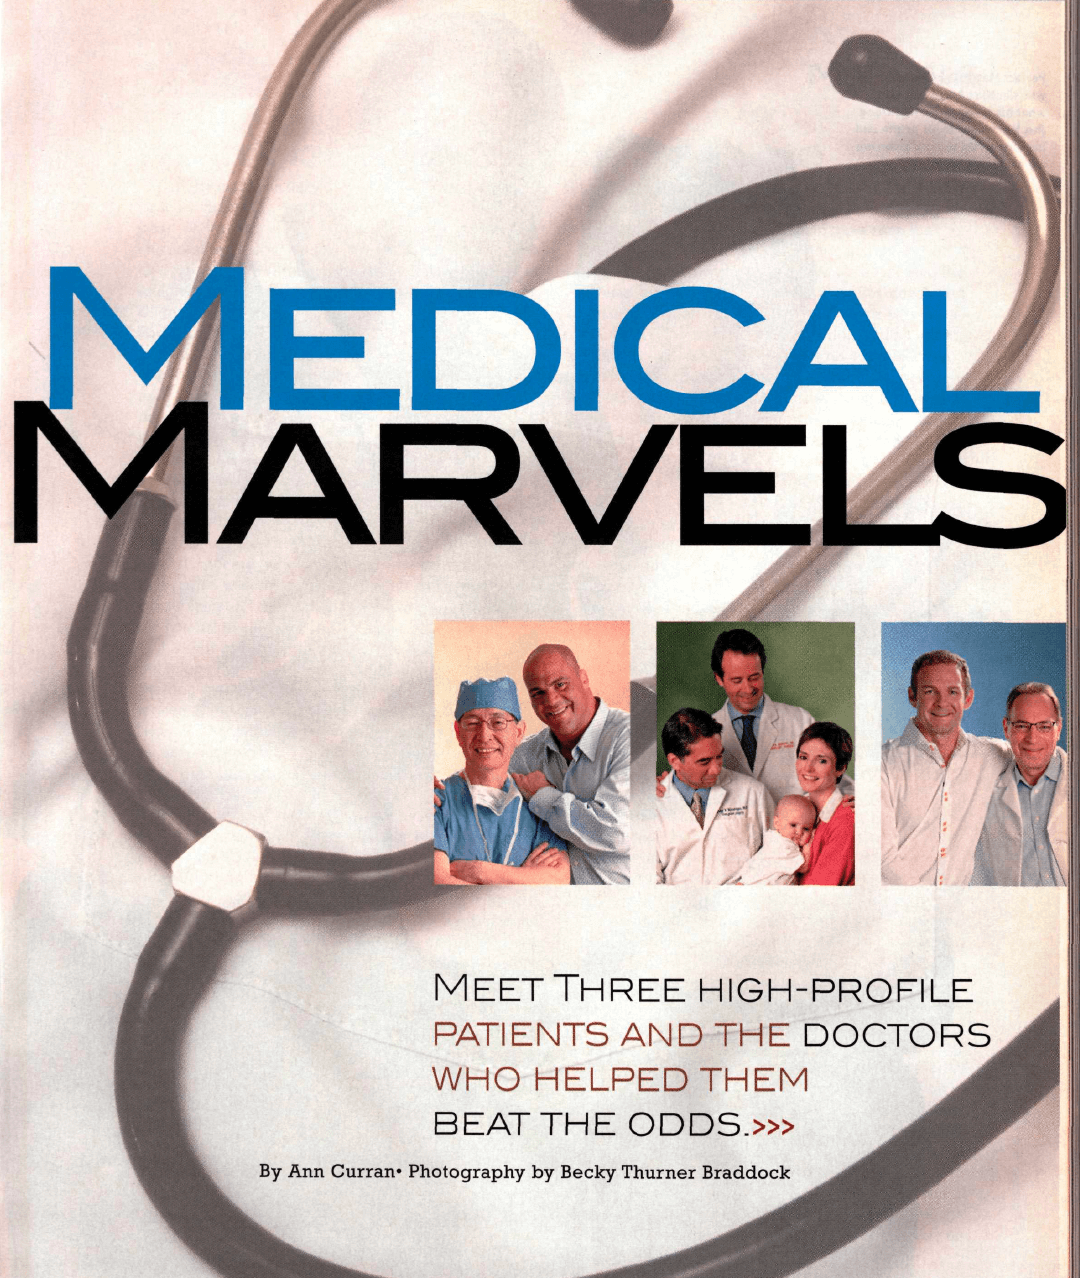 Medical Marvels - Pittsburgh Magazine May 2007 Cover Story